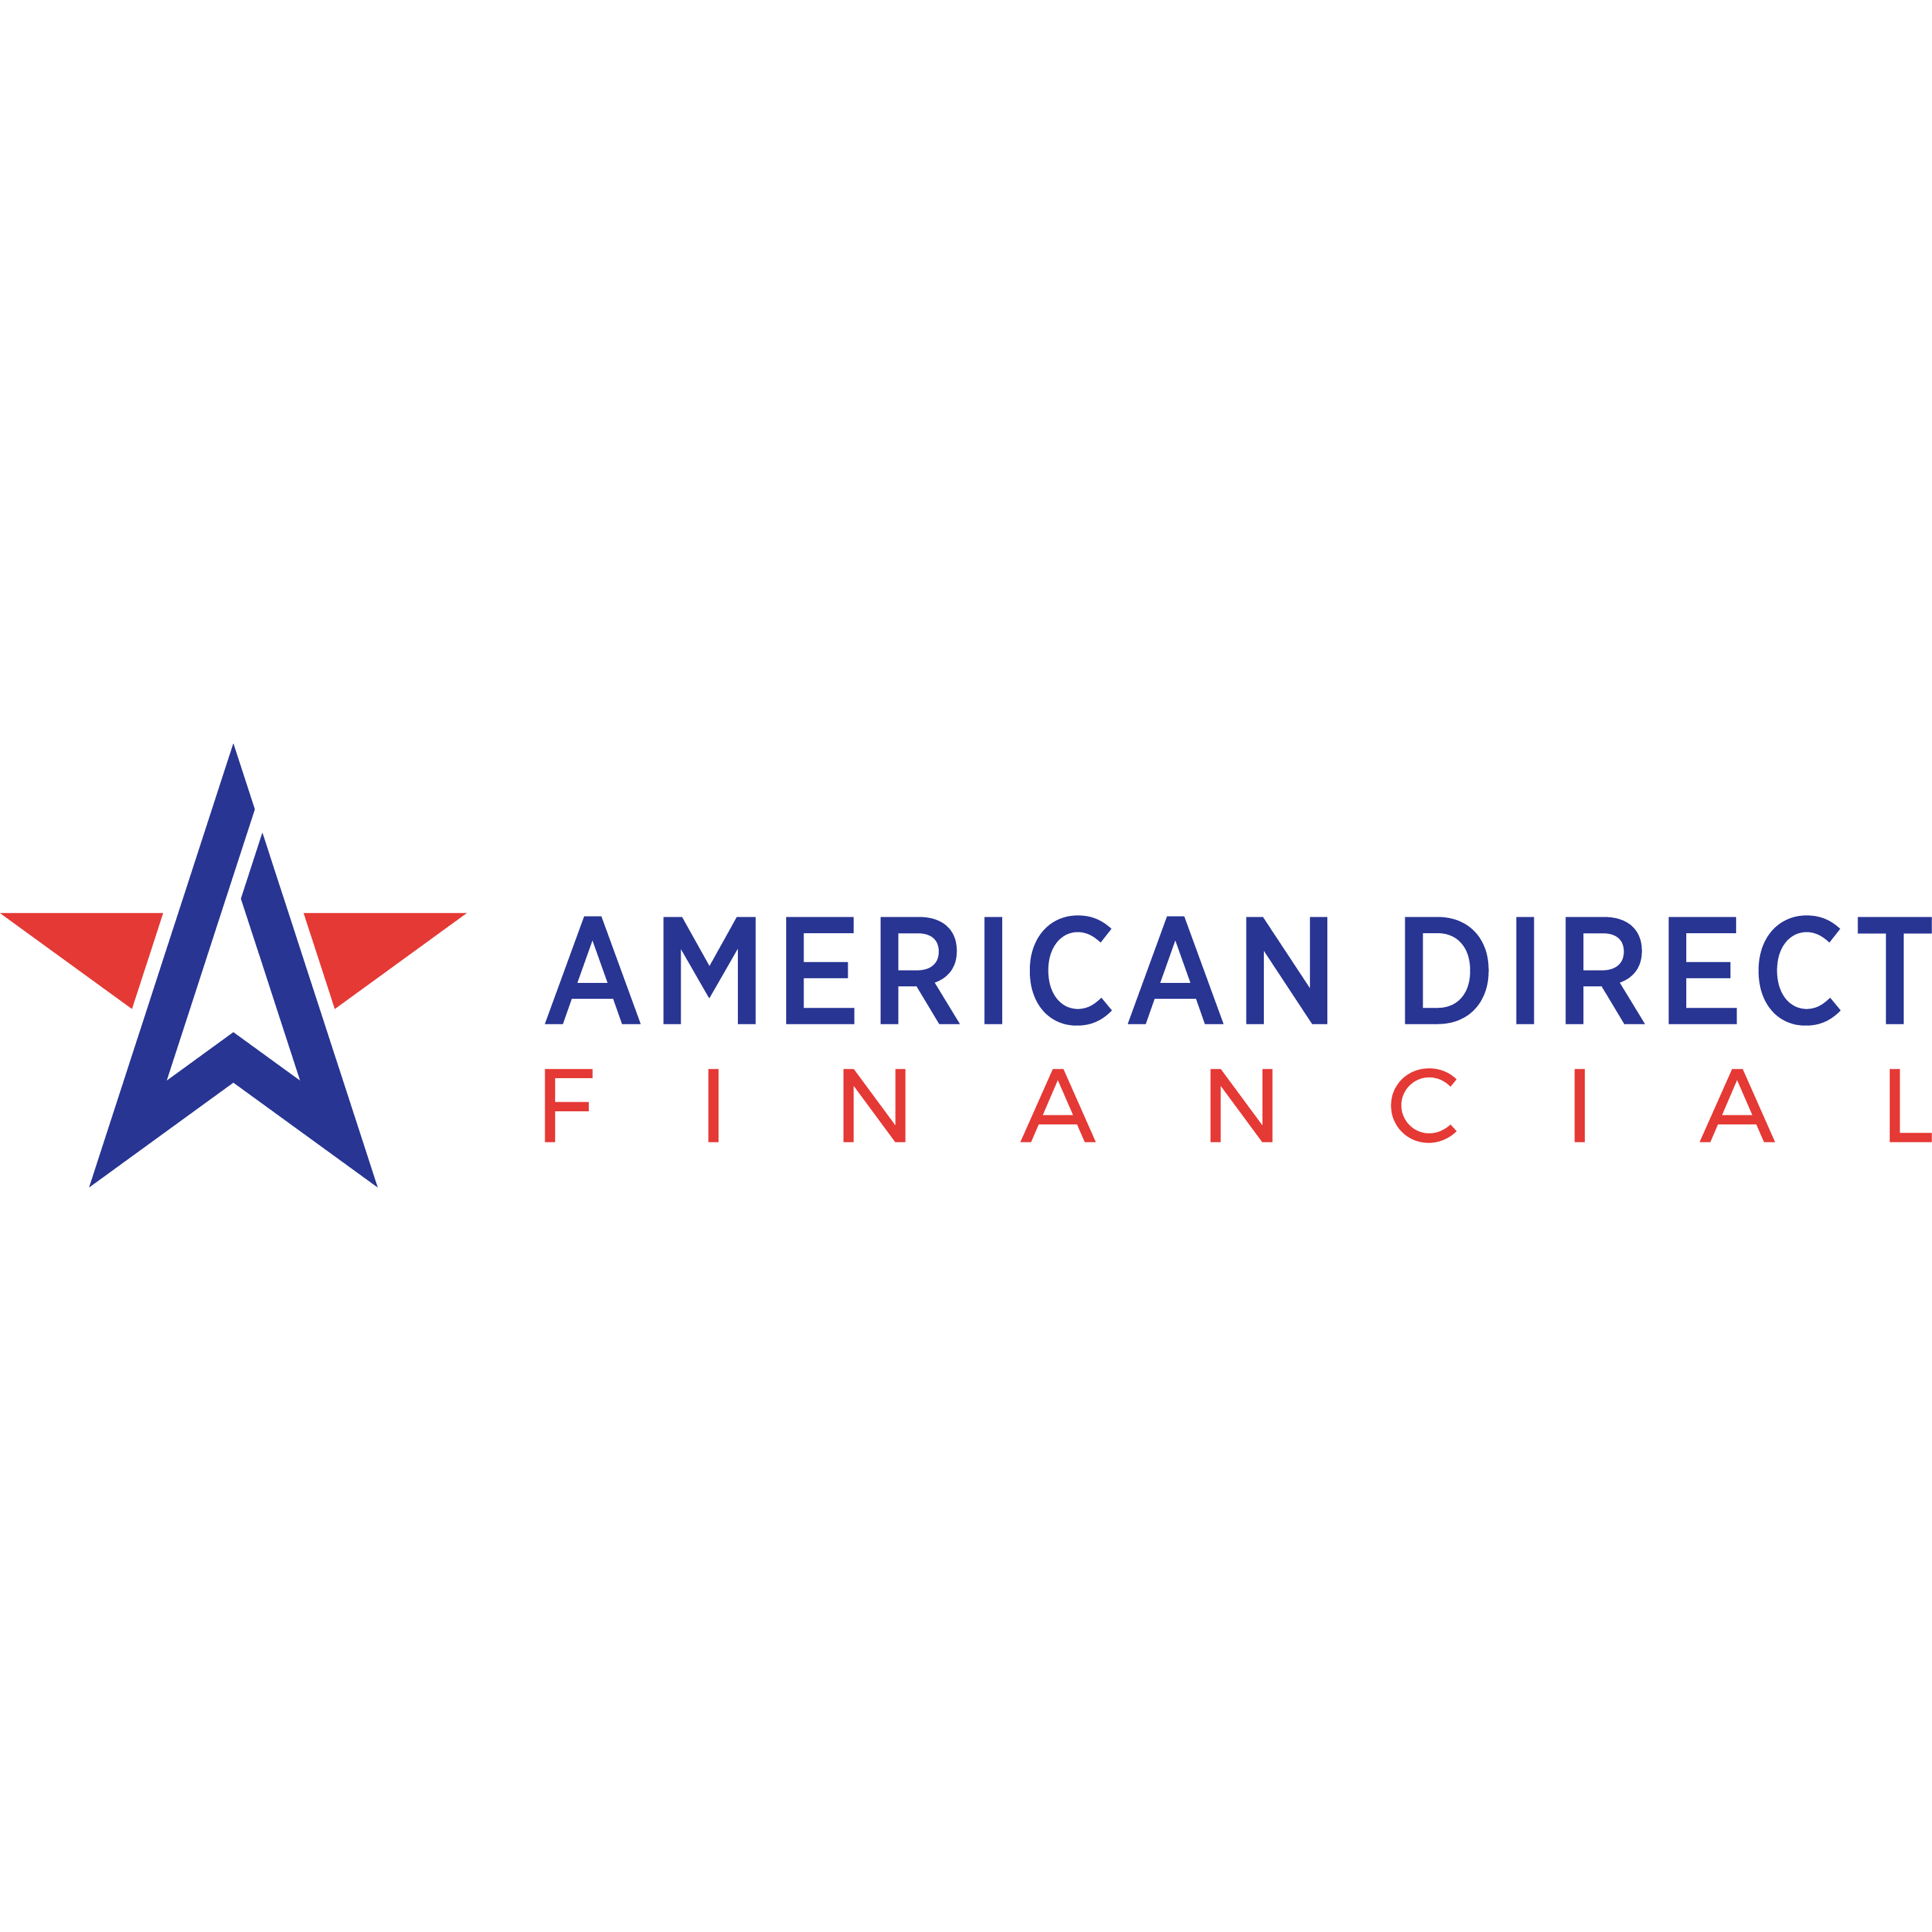 American Direct Financial